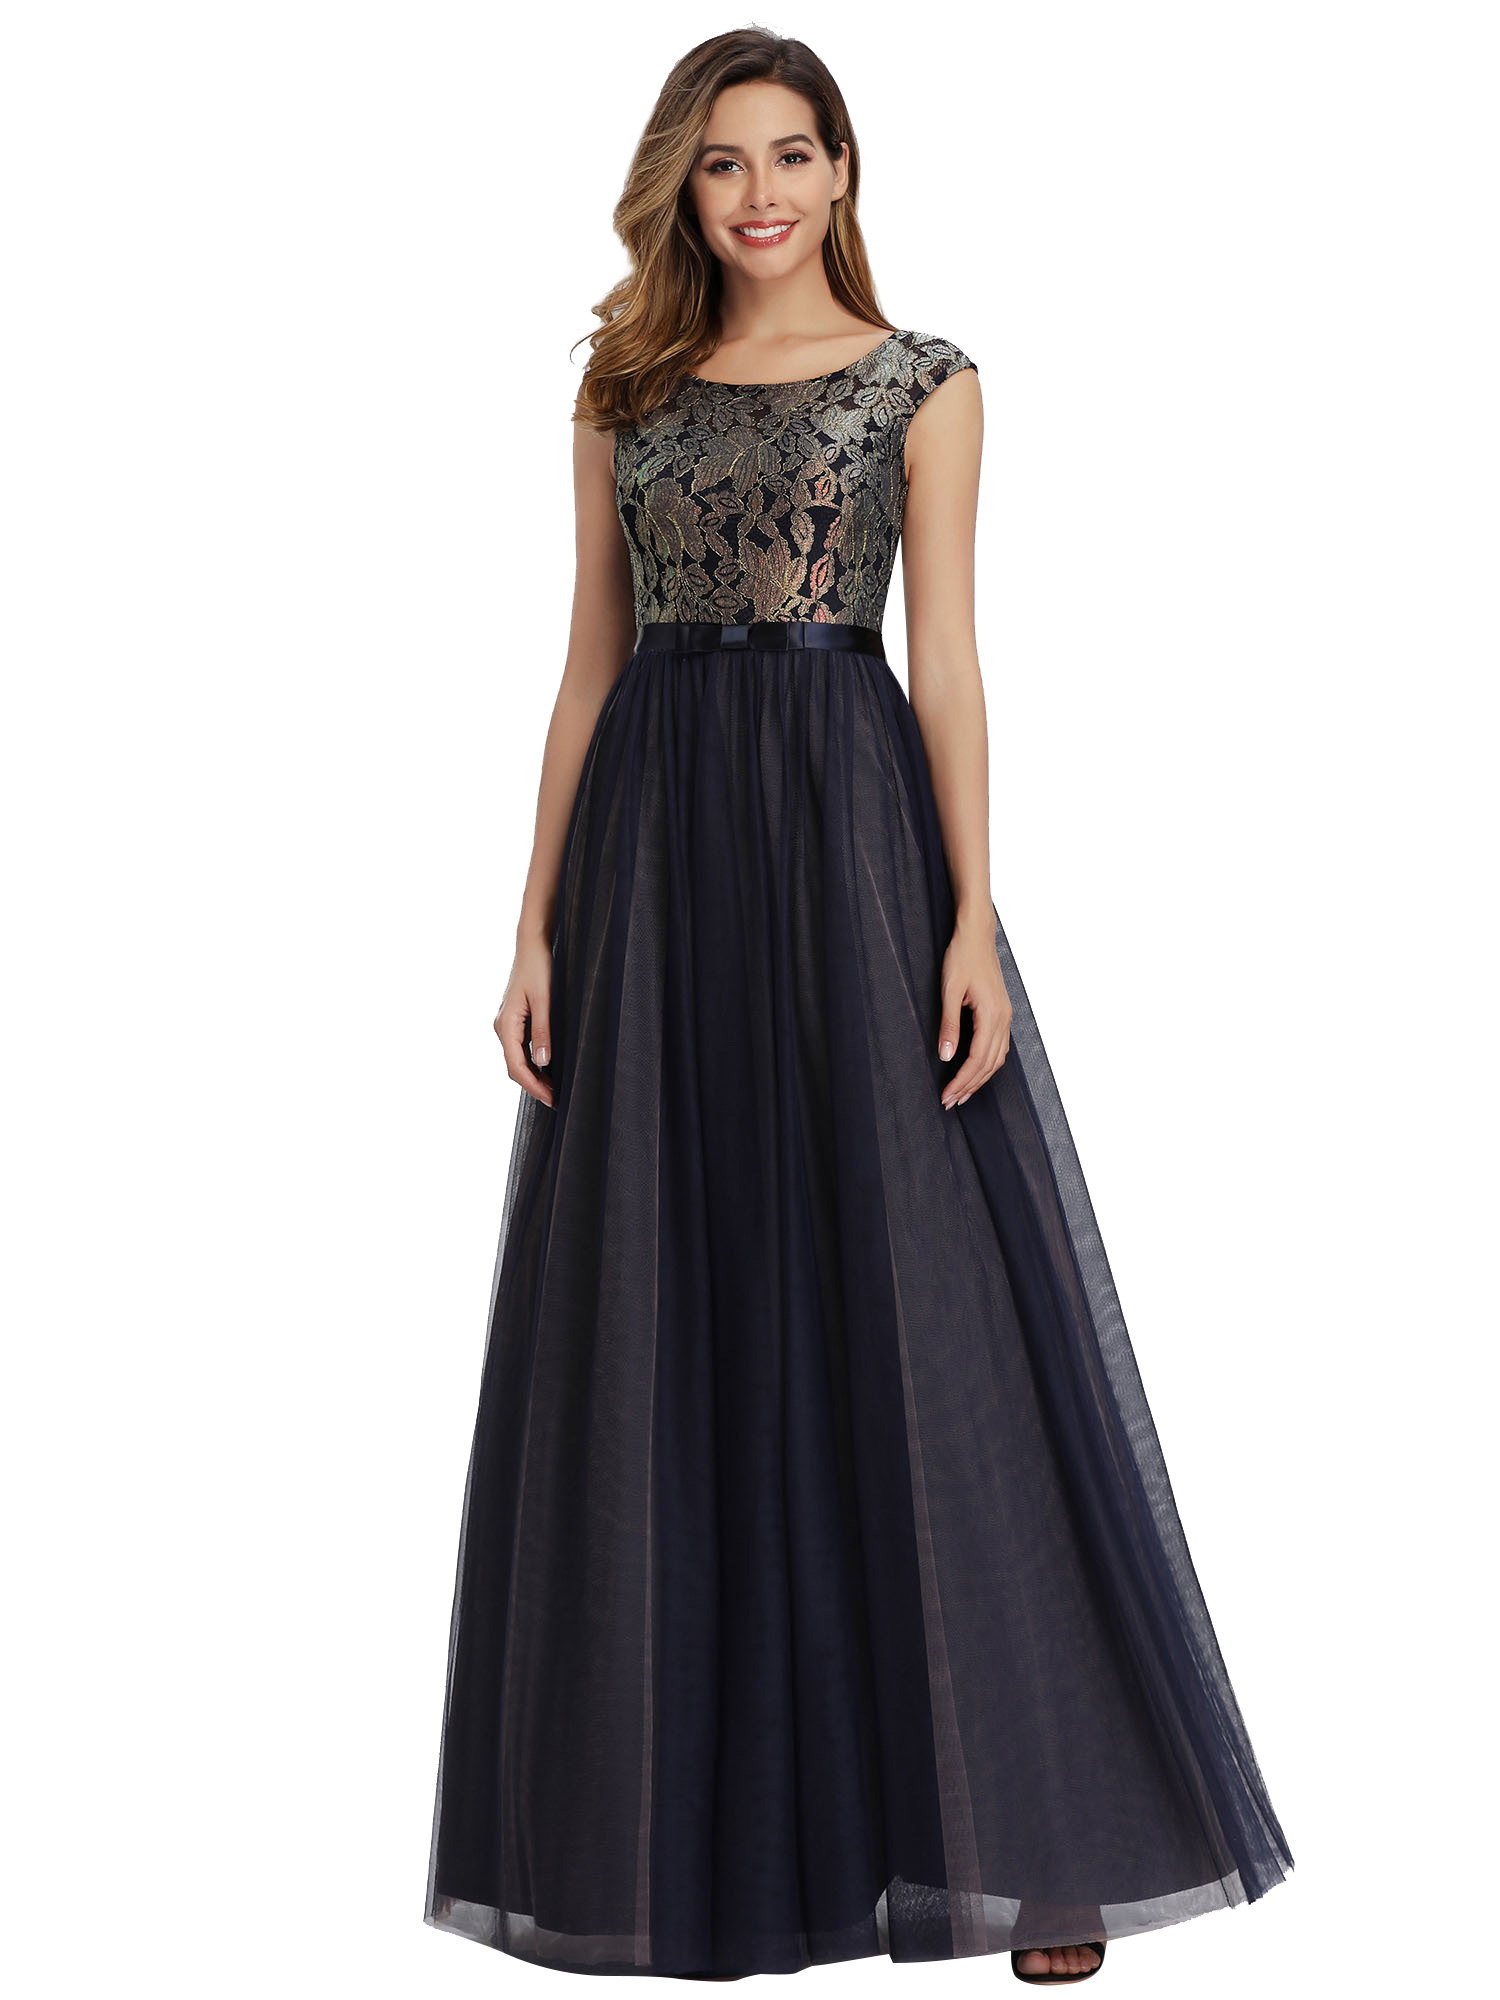 Ever-pretty-Formal-A-line-Evening-Gowns-Cocktail-Long-Lace-Homecoming-Prom-Dress thumbnail 4